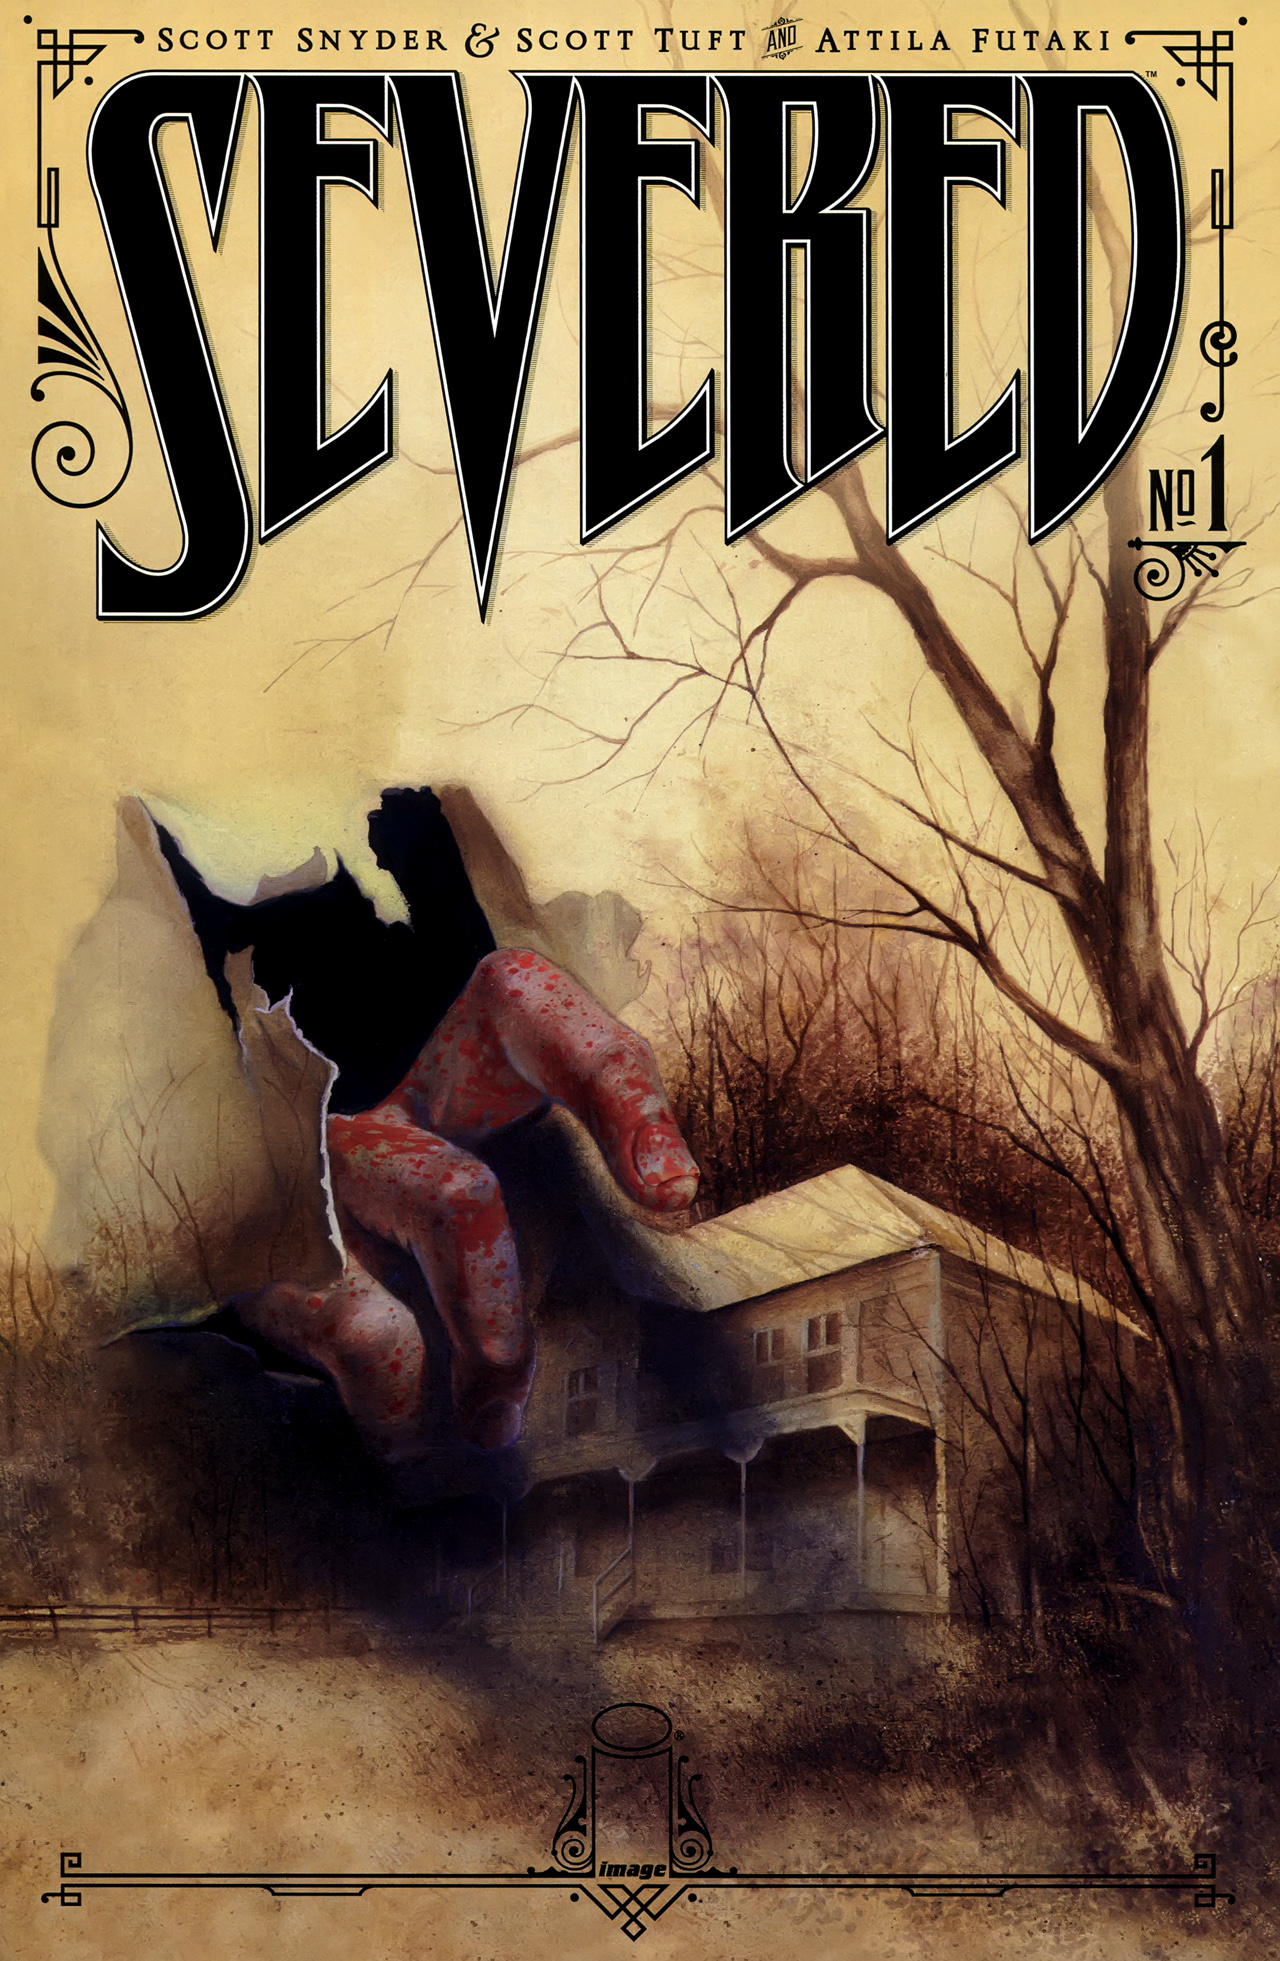 Read online Severed comic -  Issue #1 - 1